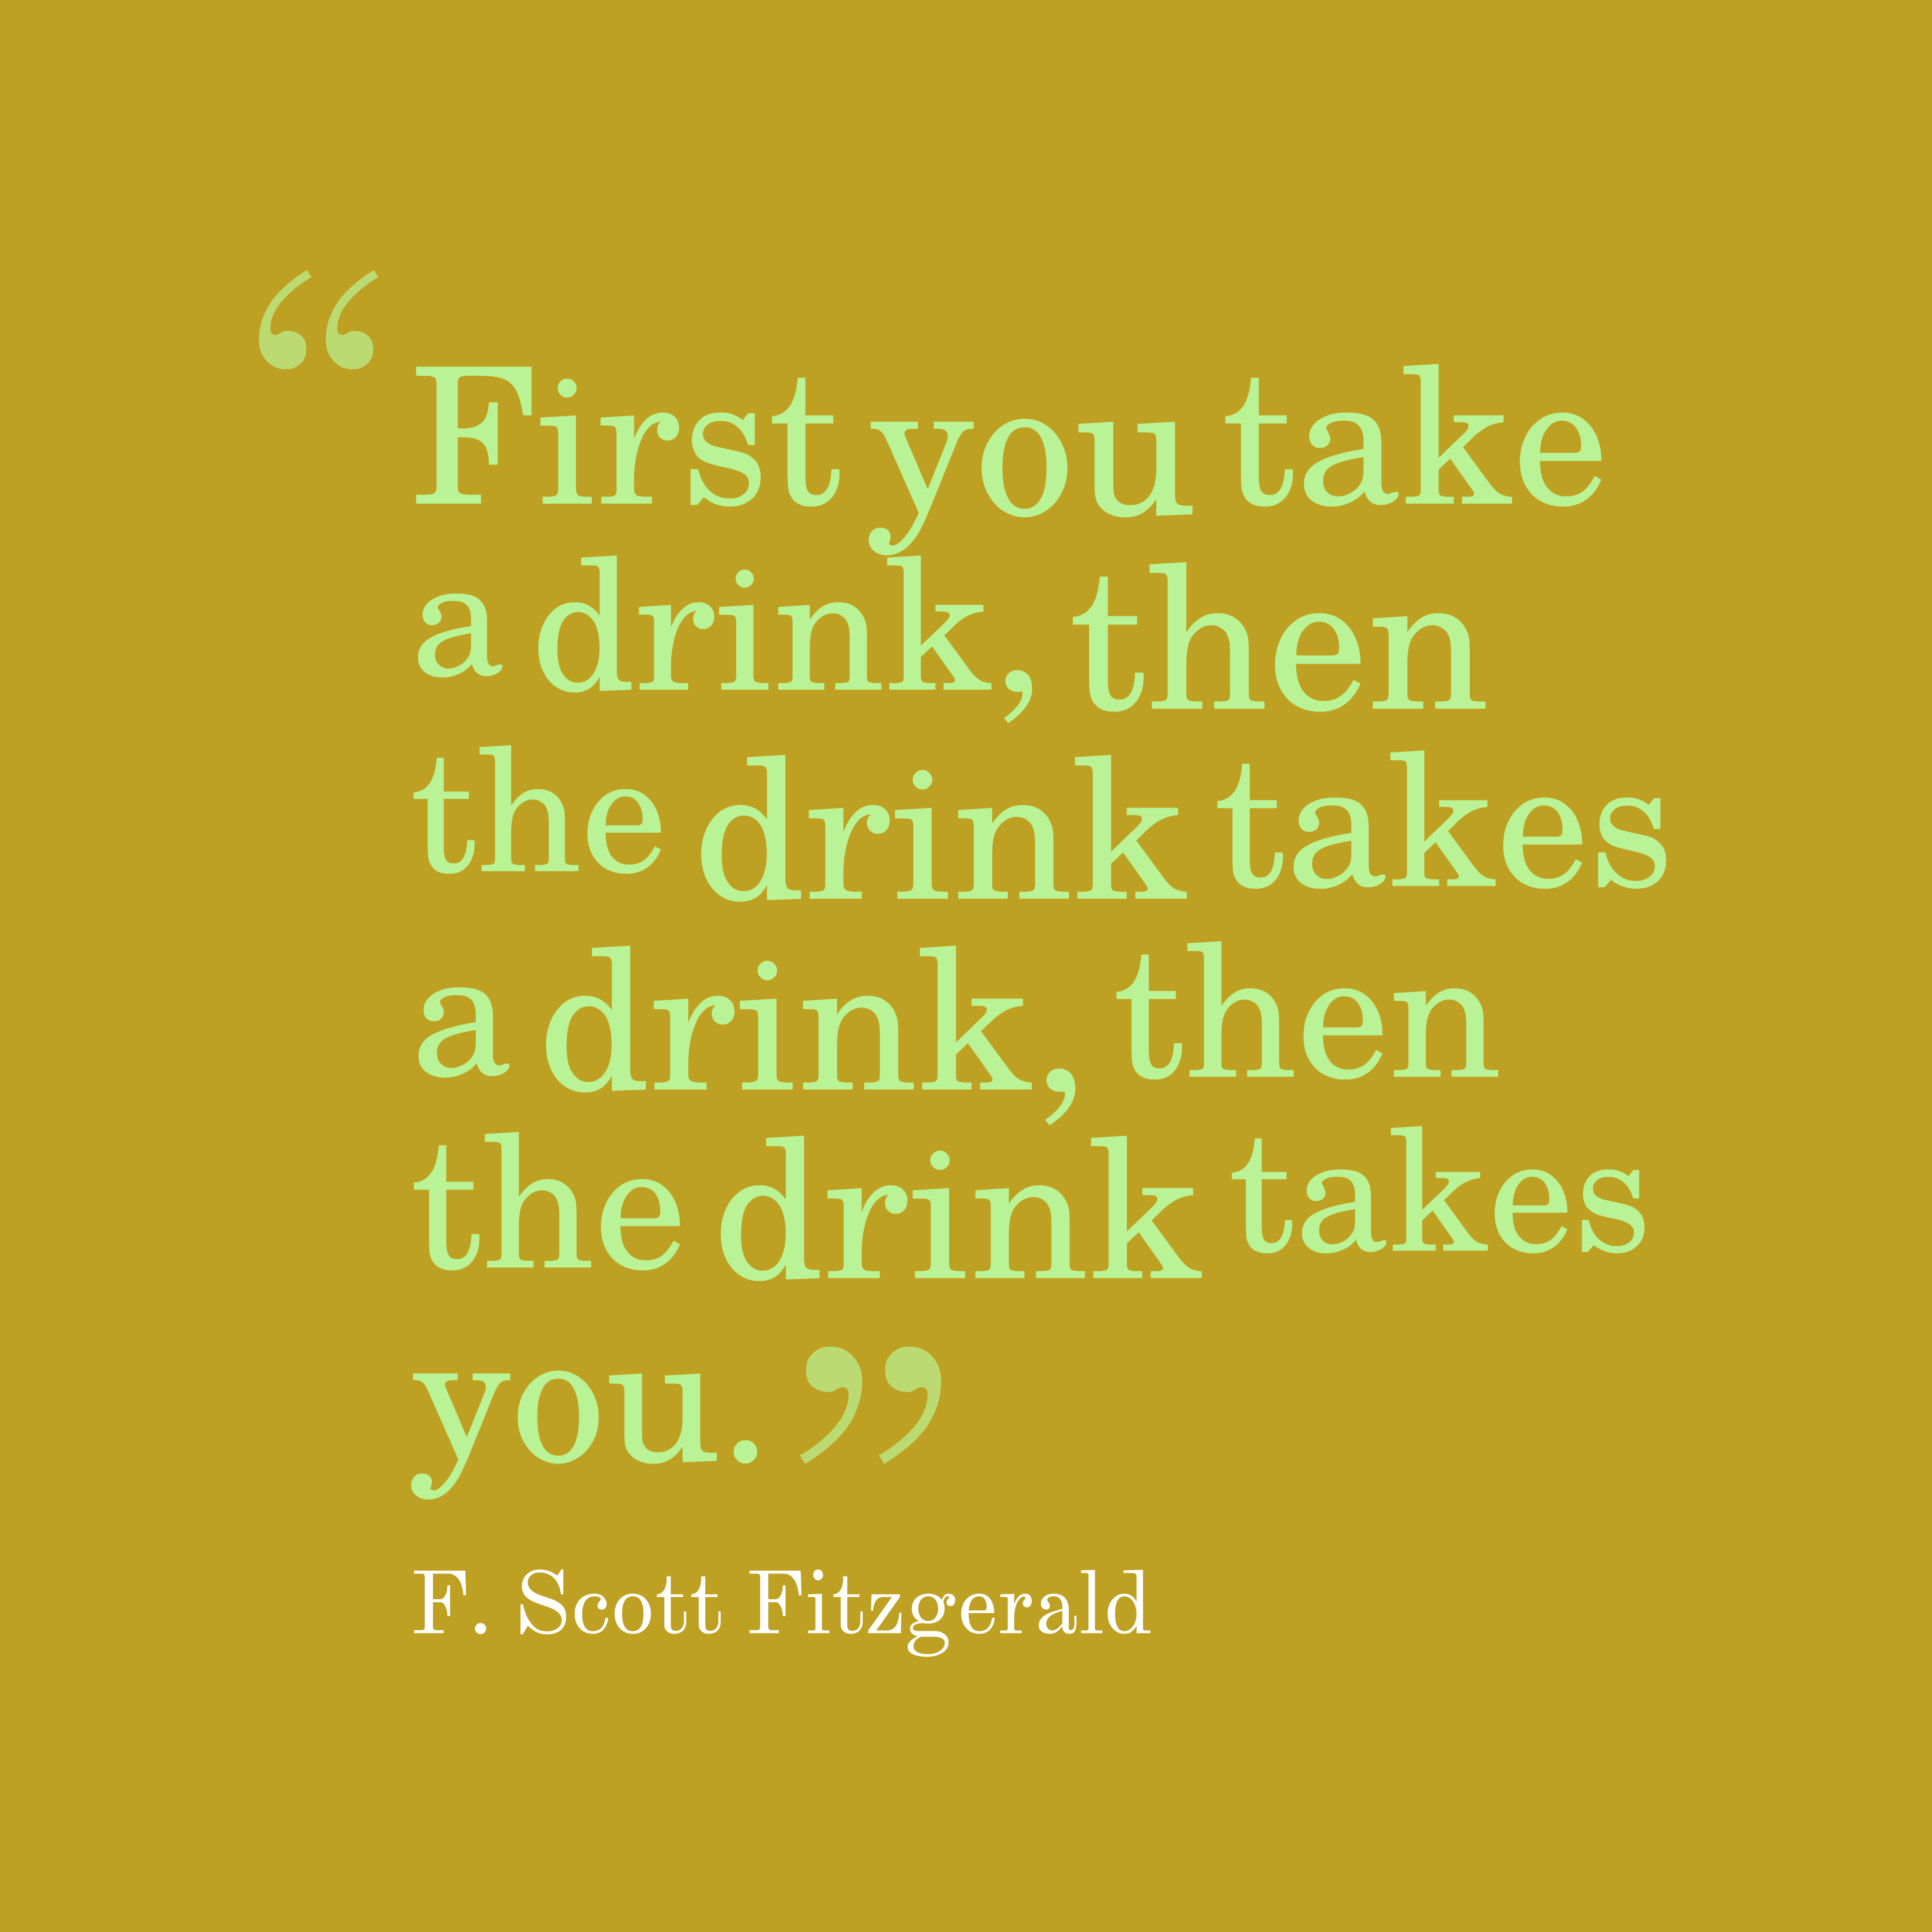 Fitzgerald Quotes: 127 Best F. Scott Fitzgerald Quotes Images